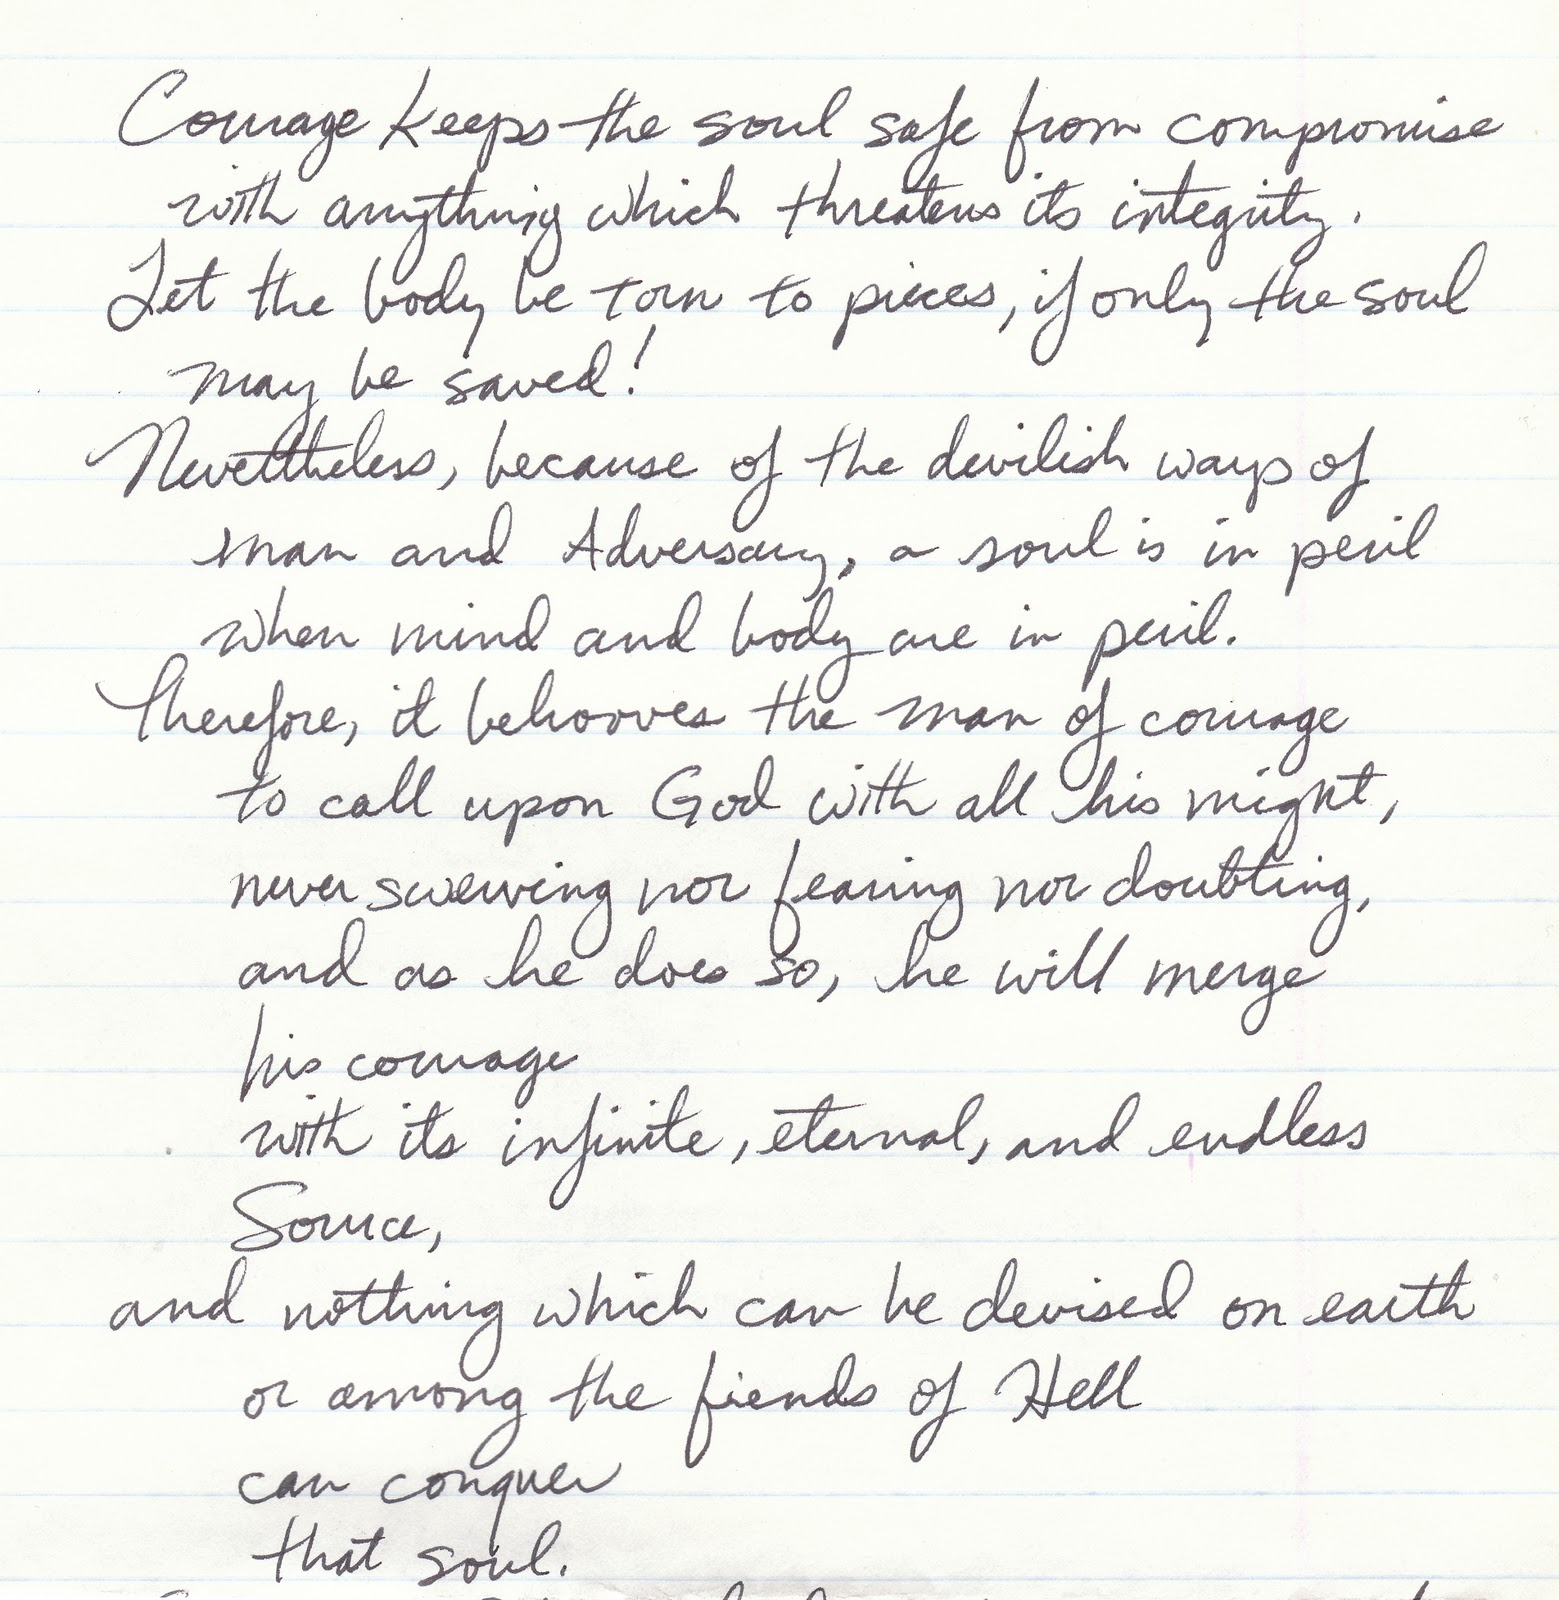 courage essay ideas ideas for an essay about courage